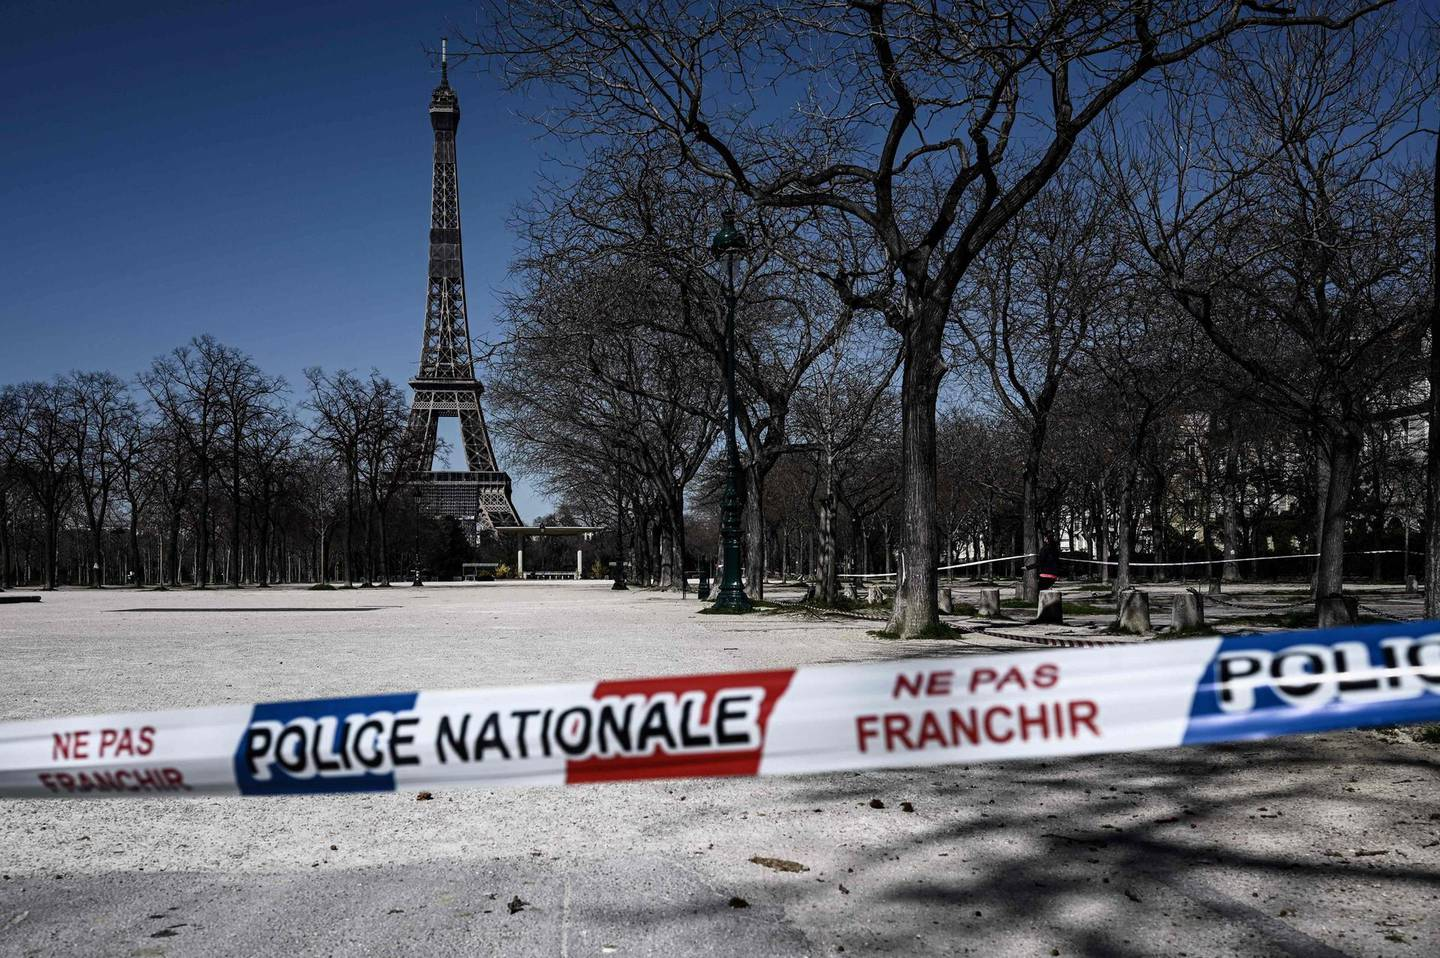 TOPSHOT - A limit set up by the national police is seen at the entrance of a closed park in front of the Eiffel tower in Paris  on March 23, 2020, as the country is under lockdown to stop the spread of Covid-19 disease caused by the novel coronavirus.  / AFP / PHILIPPE LOPEZ